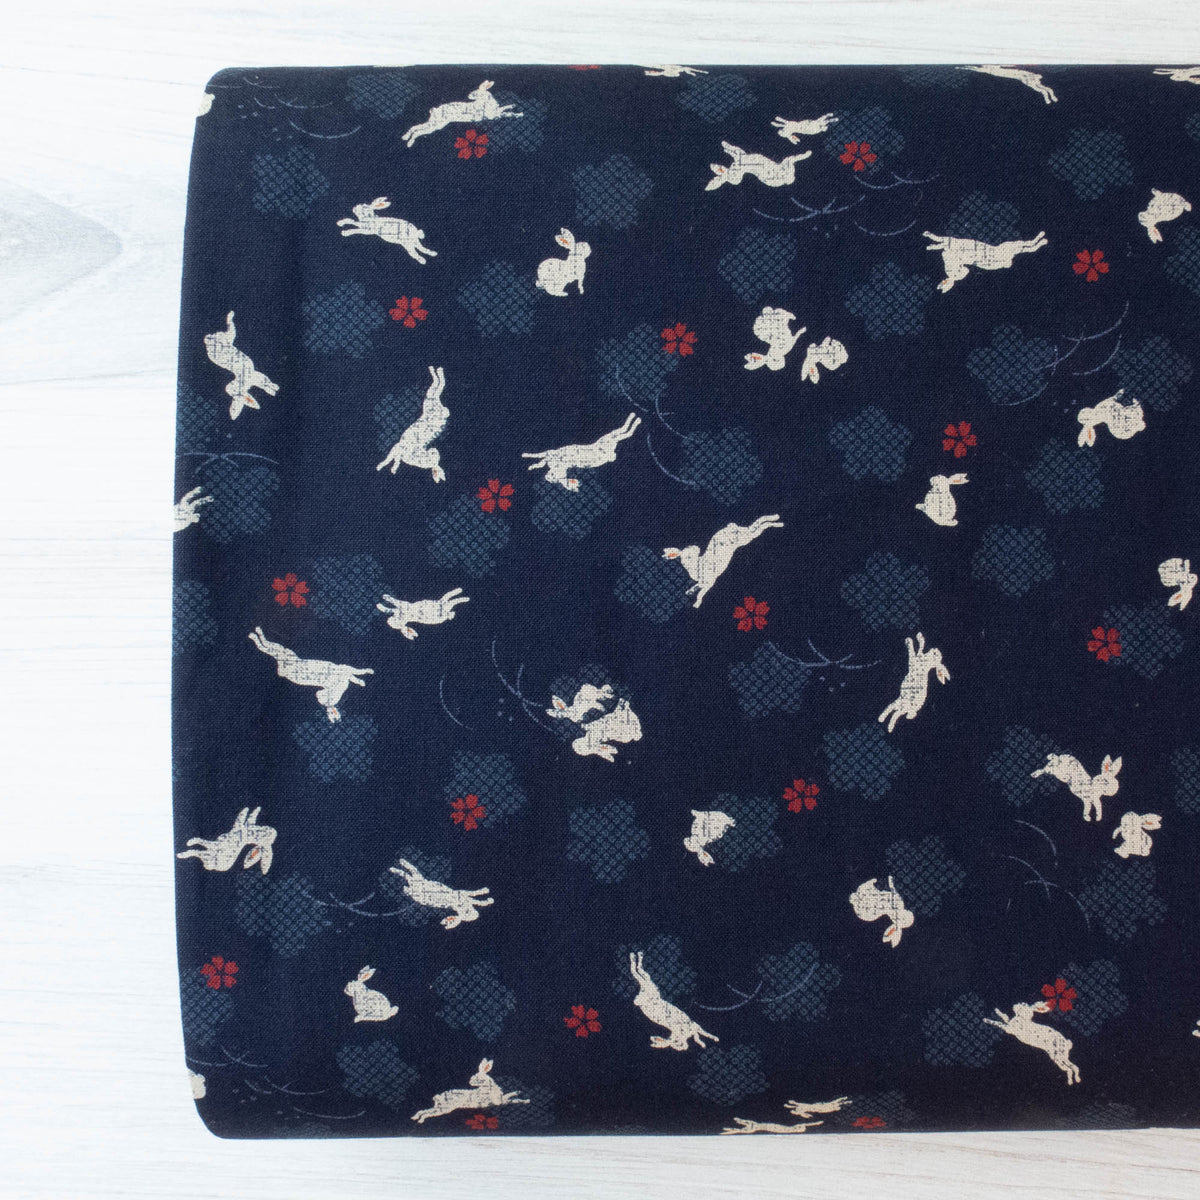 Sevenberry Kasuri : Bunnies on Navy Fabric - Snuggly Monkey